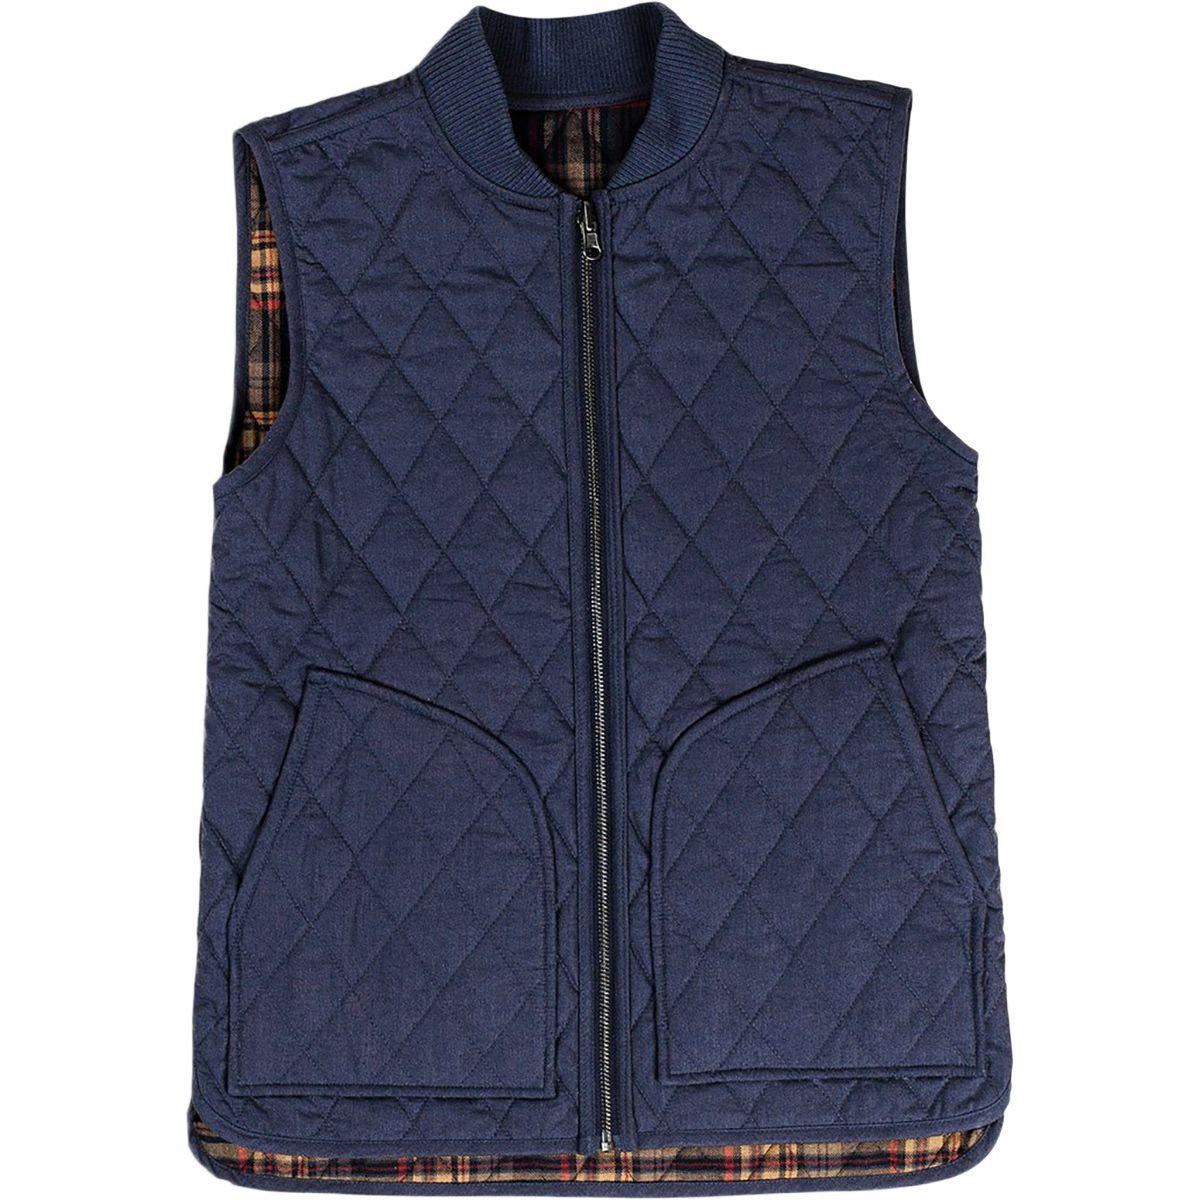 United by Blue Meadowcroft Reversible Vest - Women's Green Plaid/Black, M